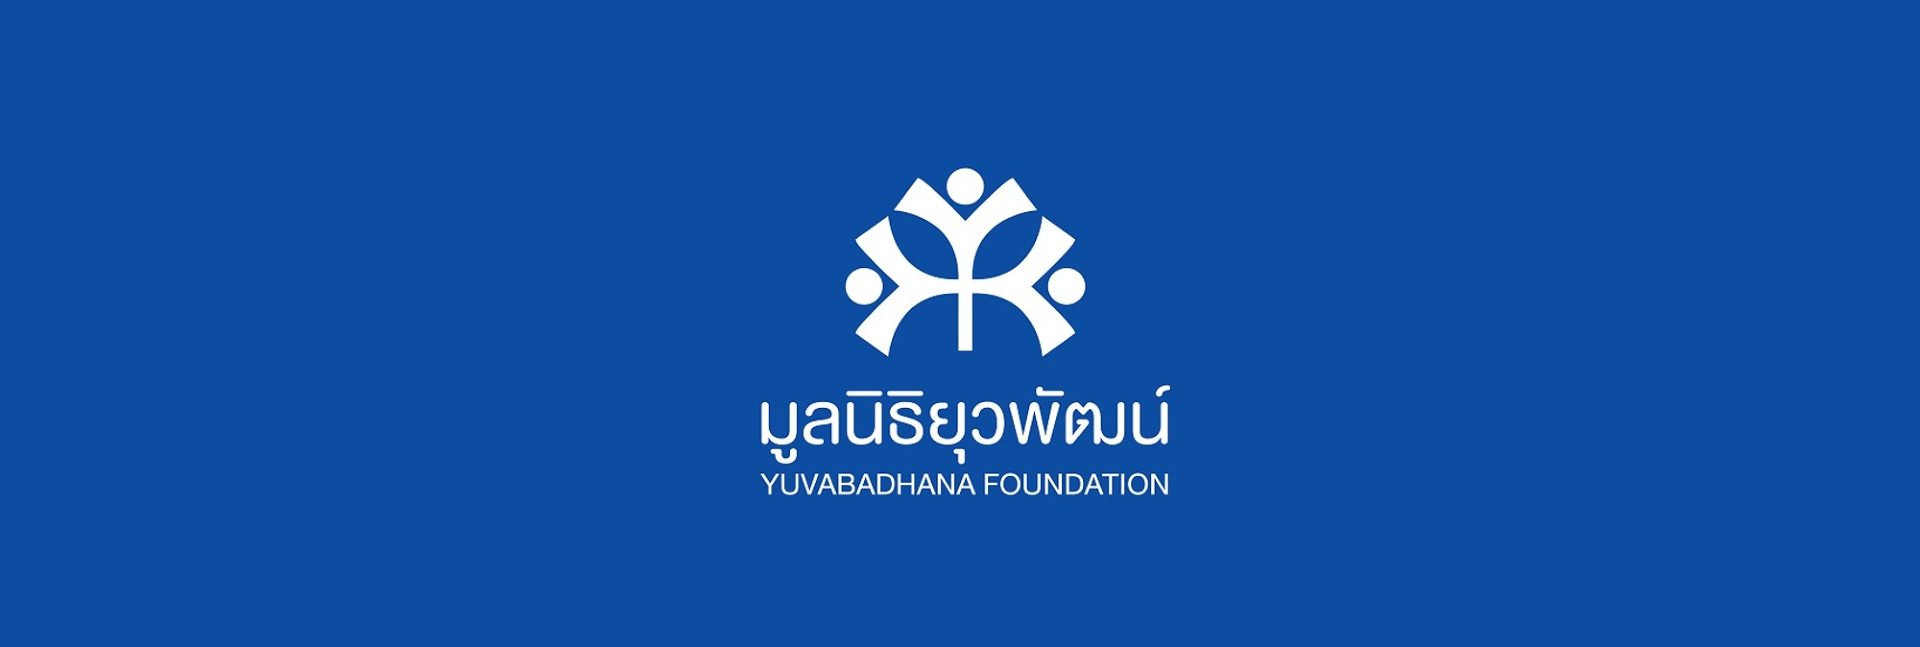 pun-boon-foundation-banner-5